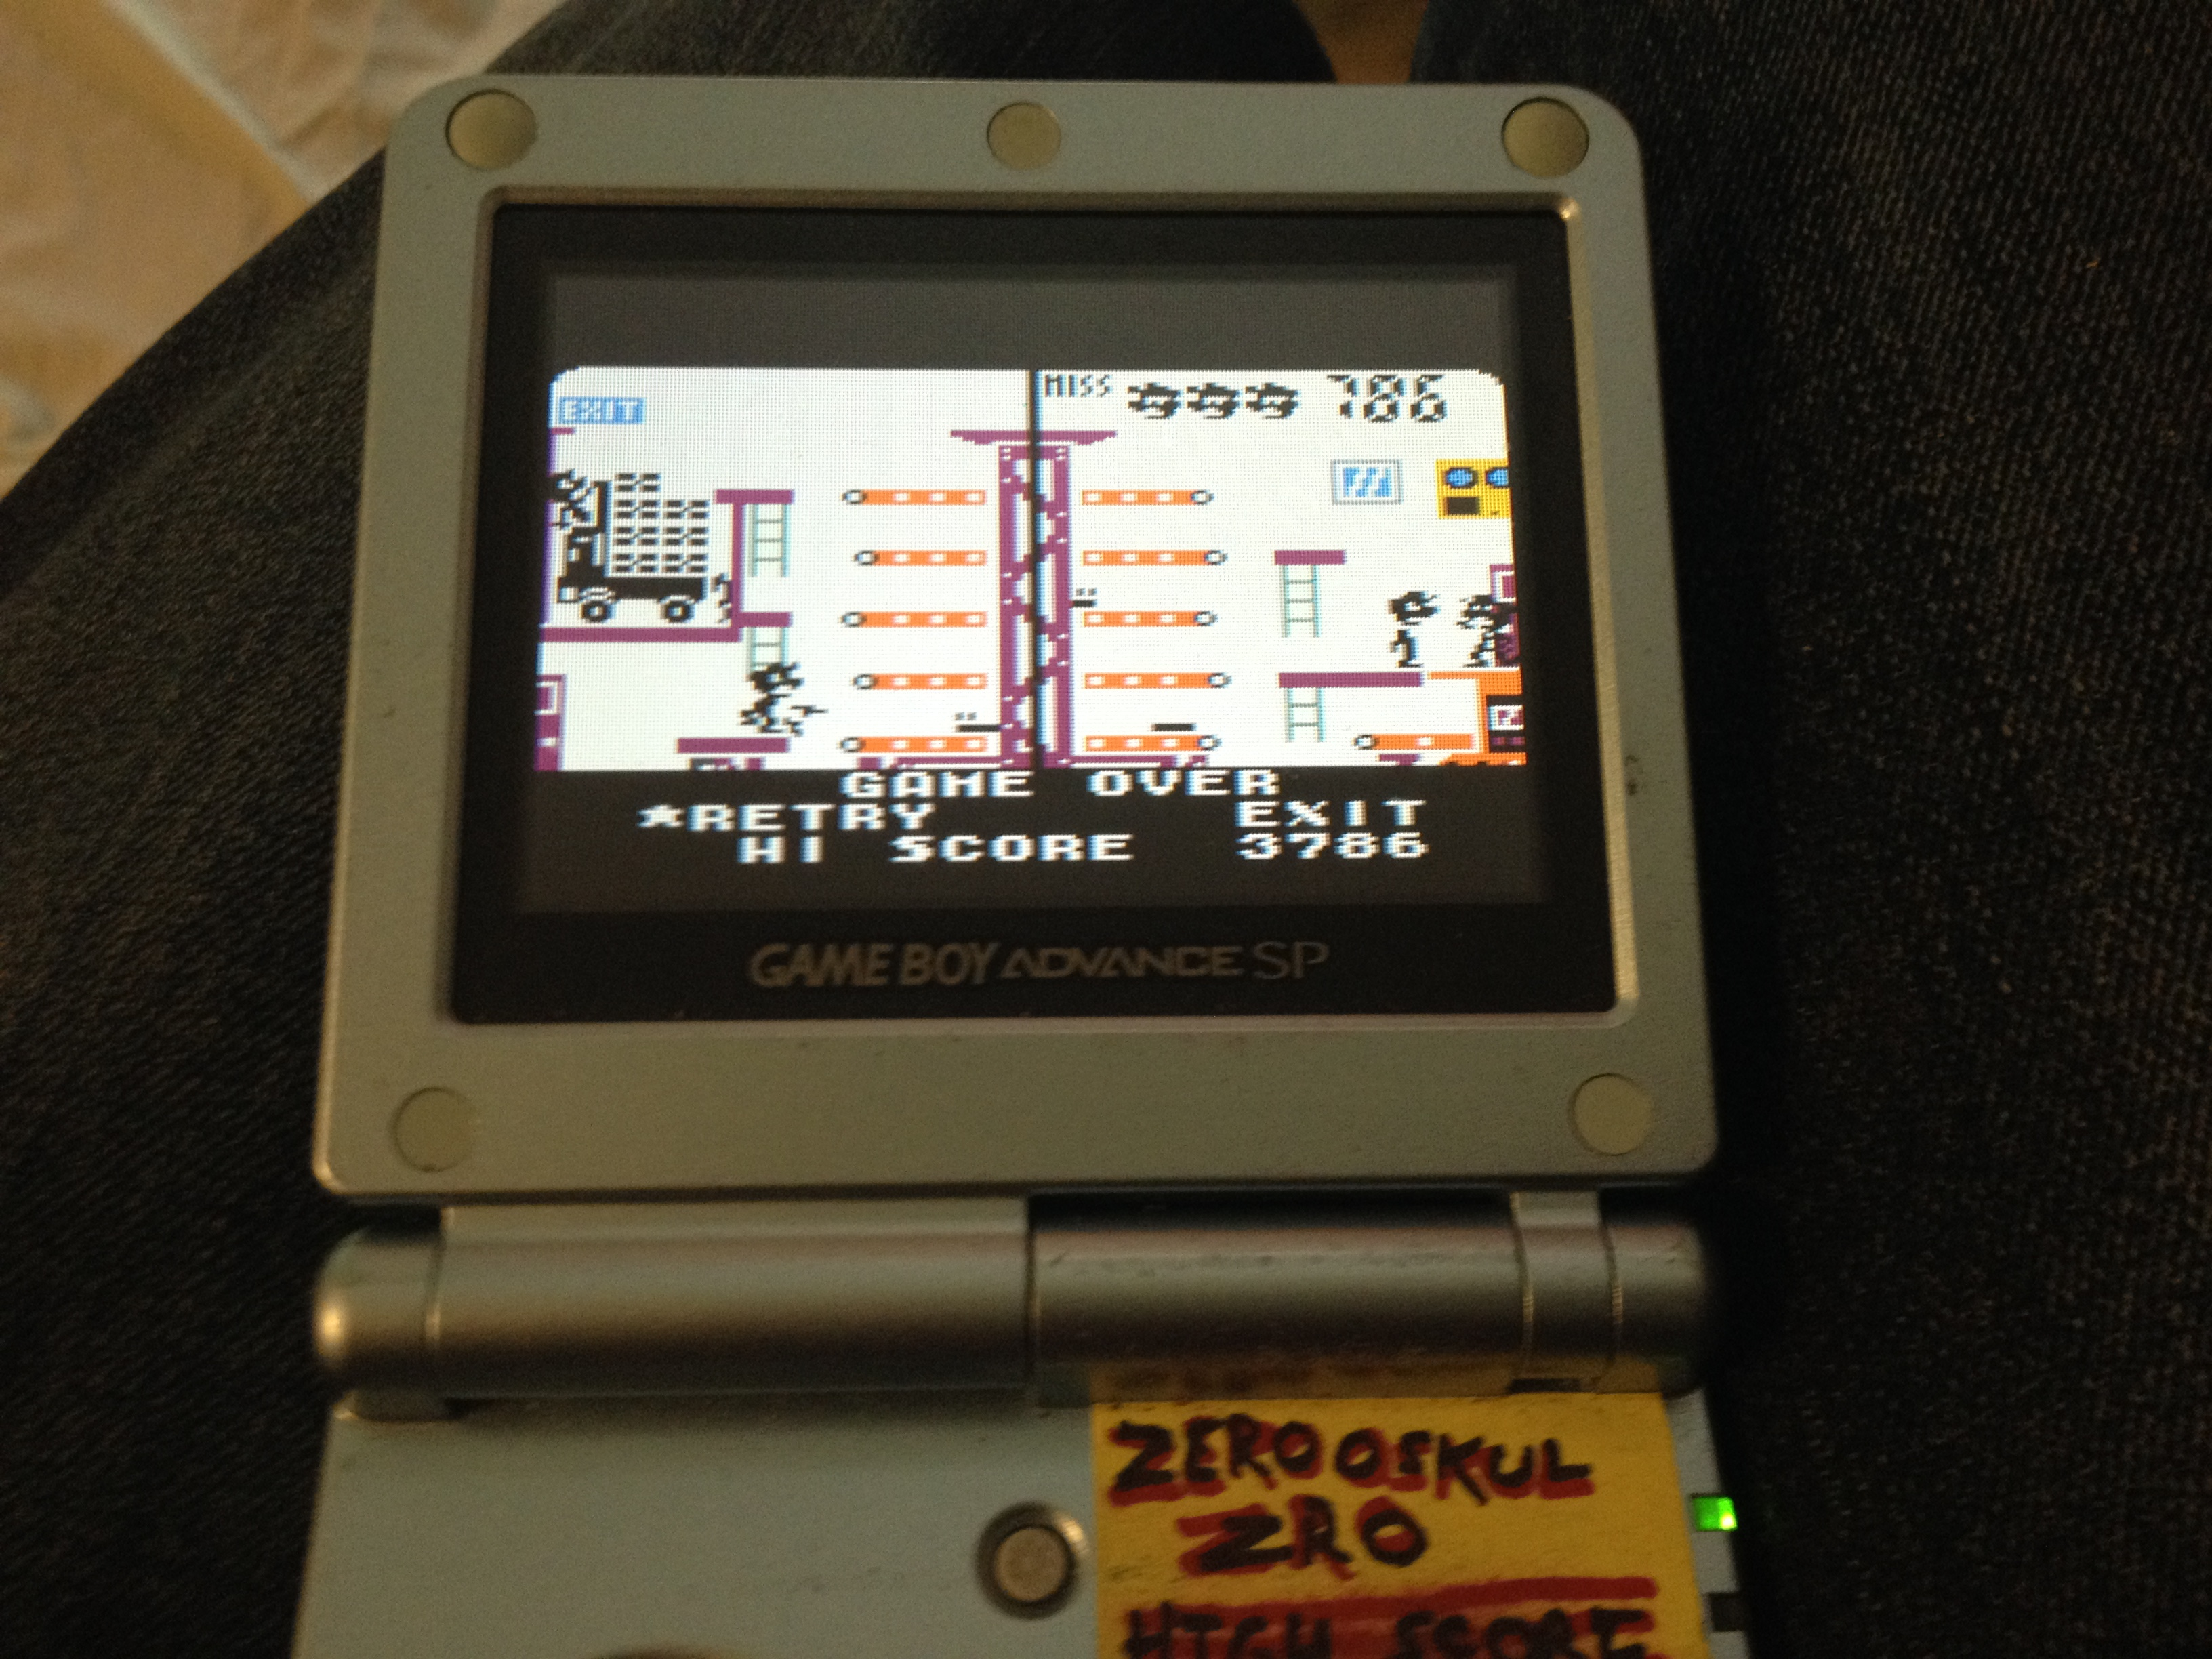 Game & Watch Gallery 3: Mario Bros: Classic: Easy 3,786 points